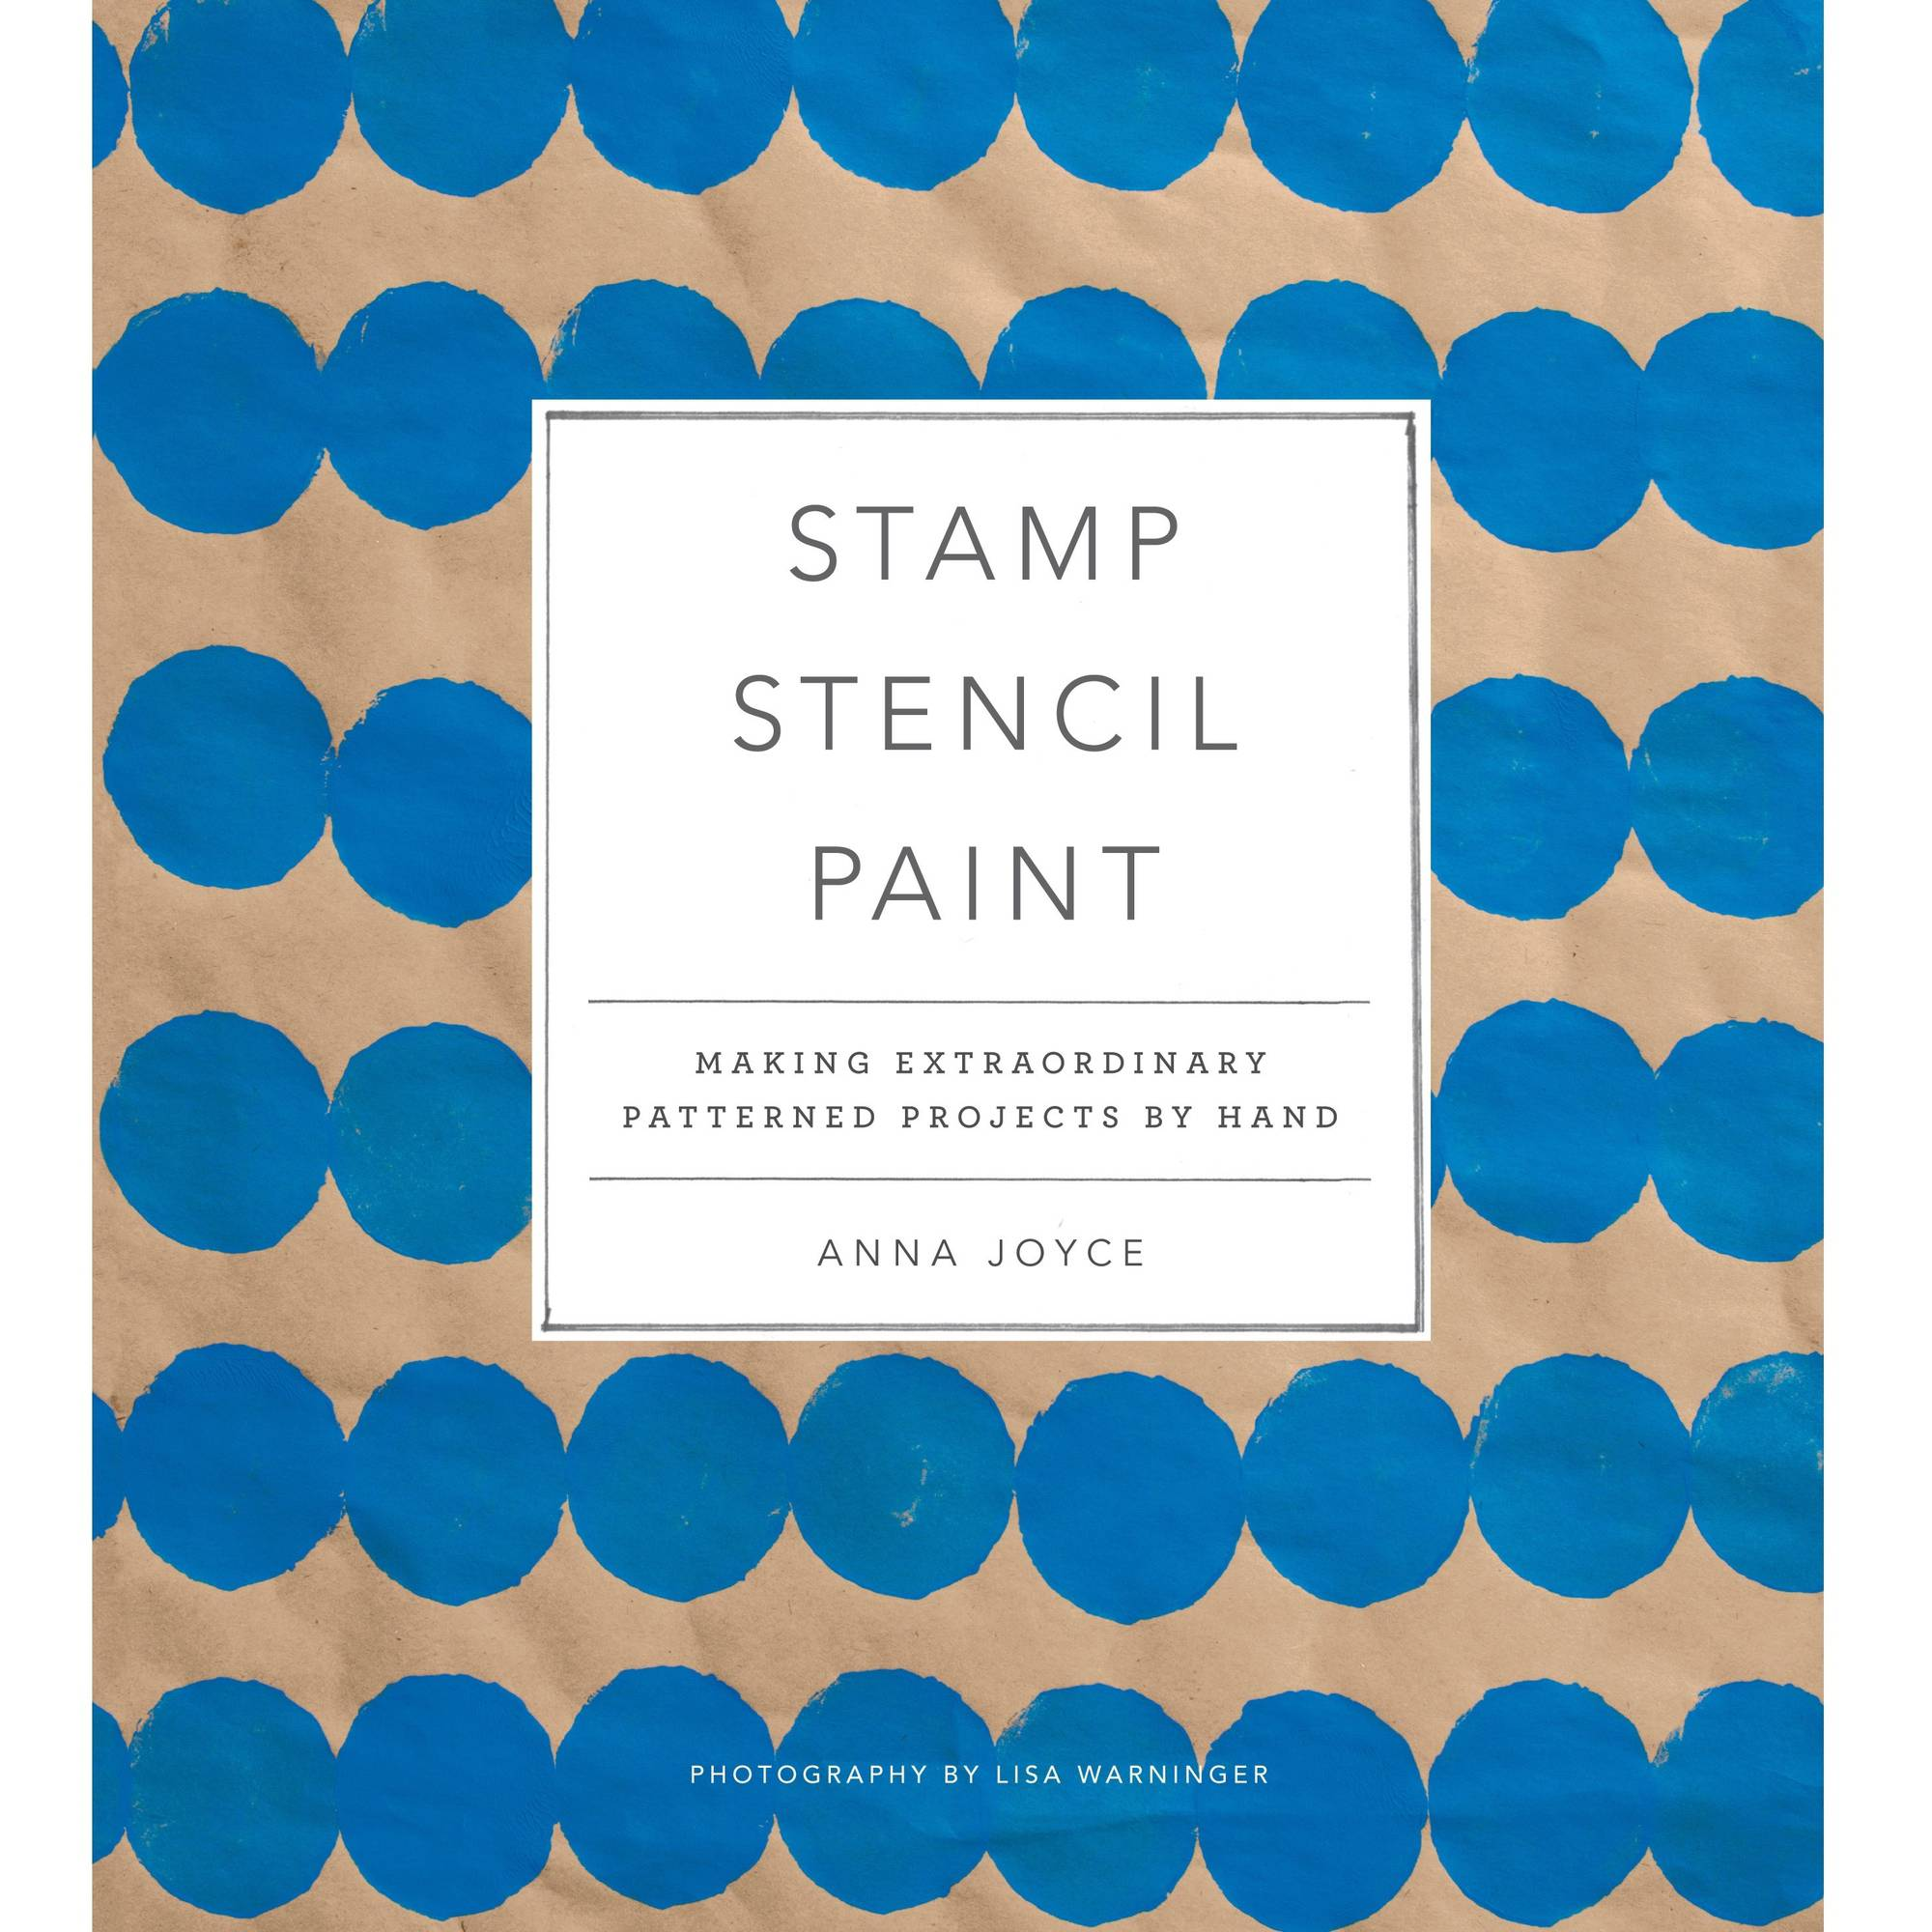 Stewart Tabori & Chang Books Stamp Stencil Paint